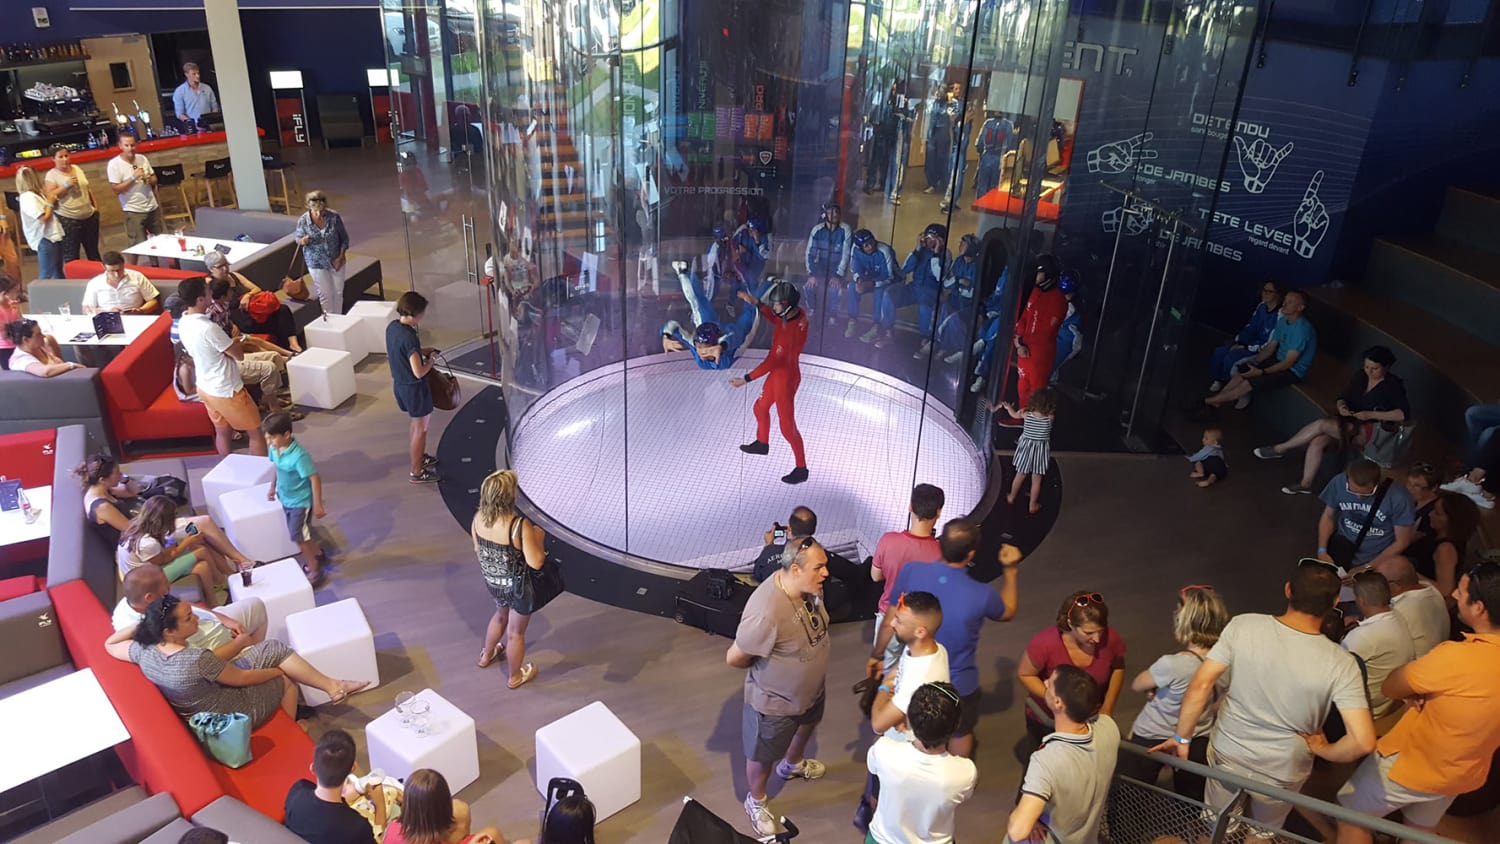 Ifly Lyon - Saint-Priest